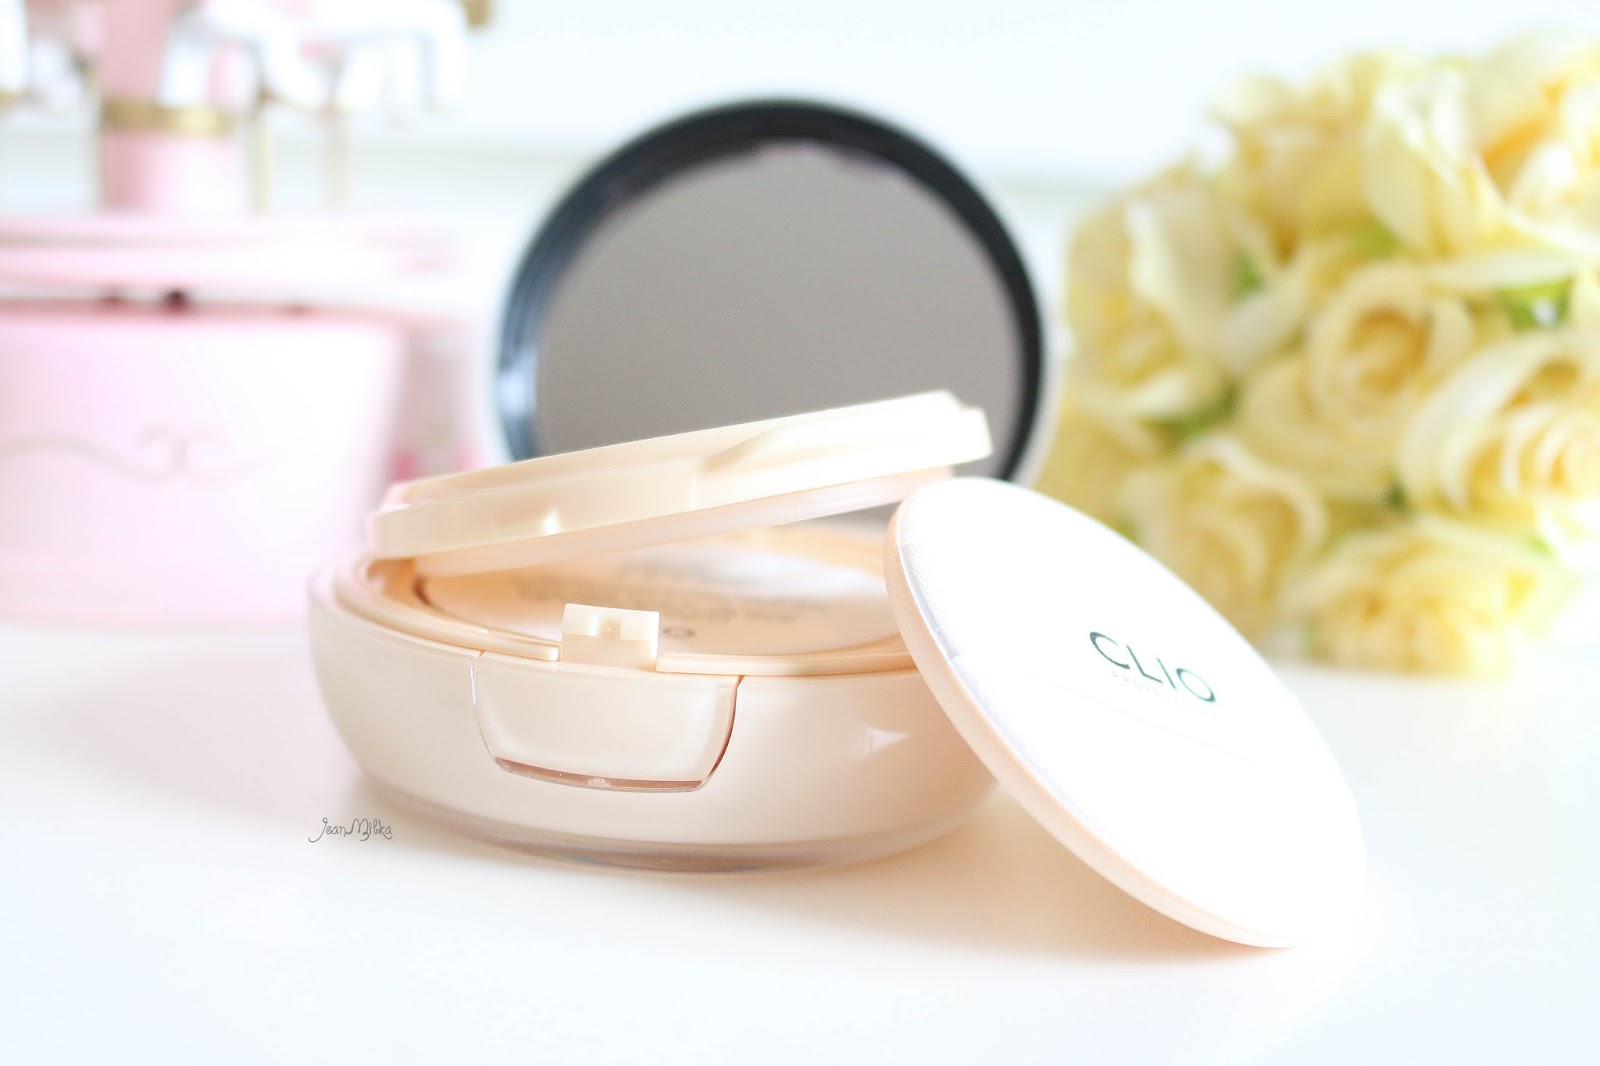 clio, kill cover, clio kill cover, review, clio cushion, cushion, clio kill cover cushion, korean makeup, korea makeup, korean beauty, indonesian beauty blogger, beauty blog indonesia, beauty blogger indonesia